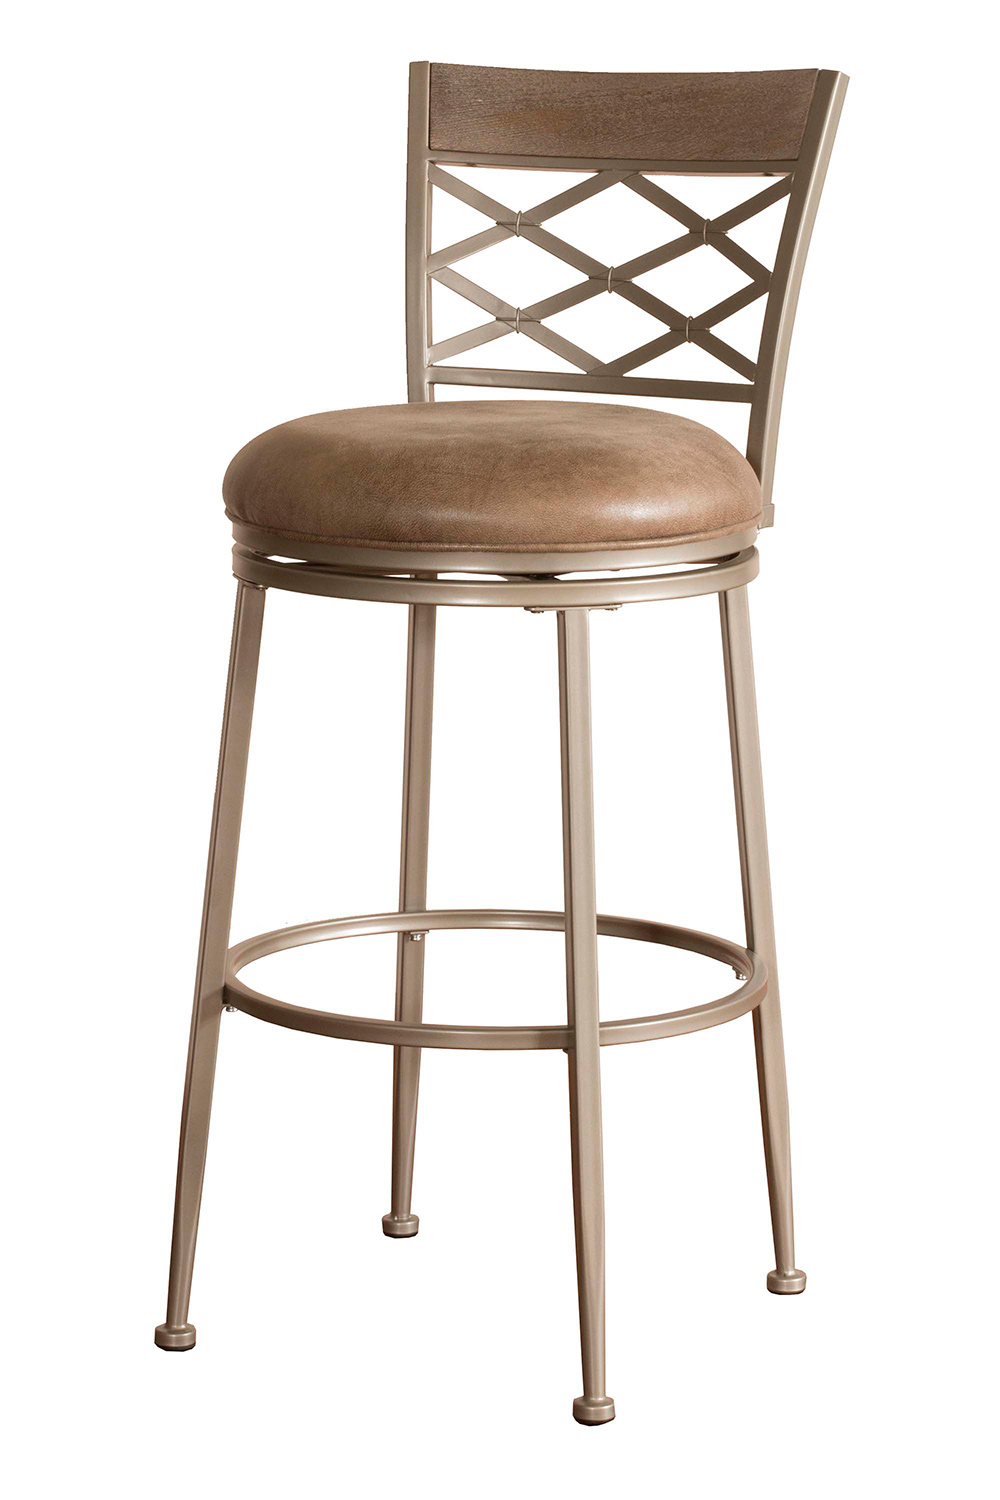 Hillsdale Hutchinson Swivel Bar Stool - Pewter - Aged Ivory Fabric